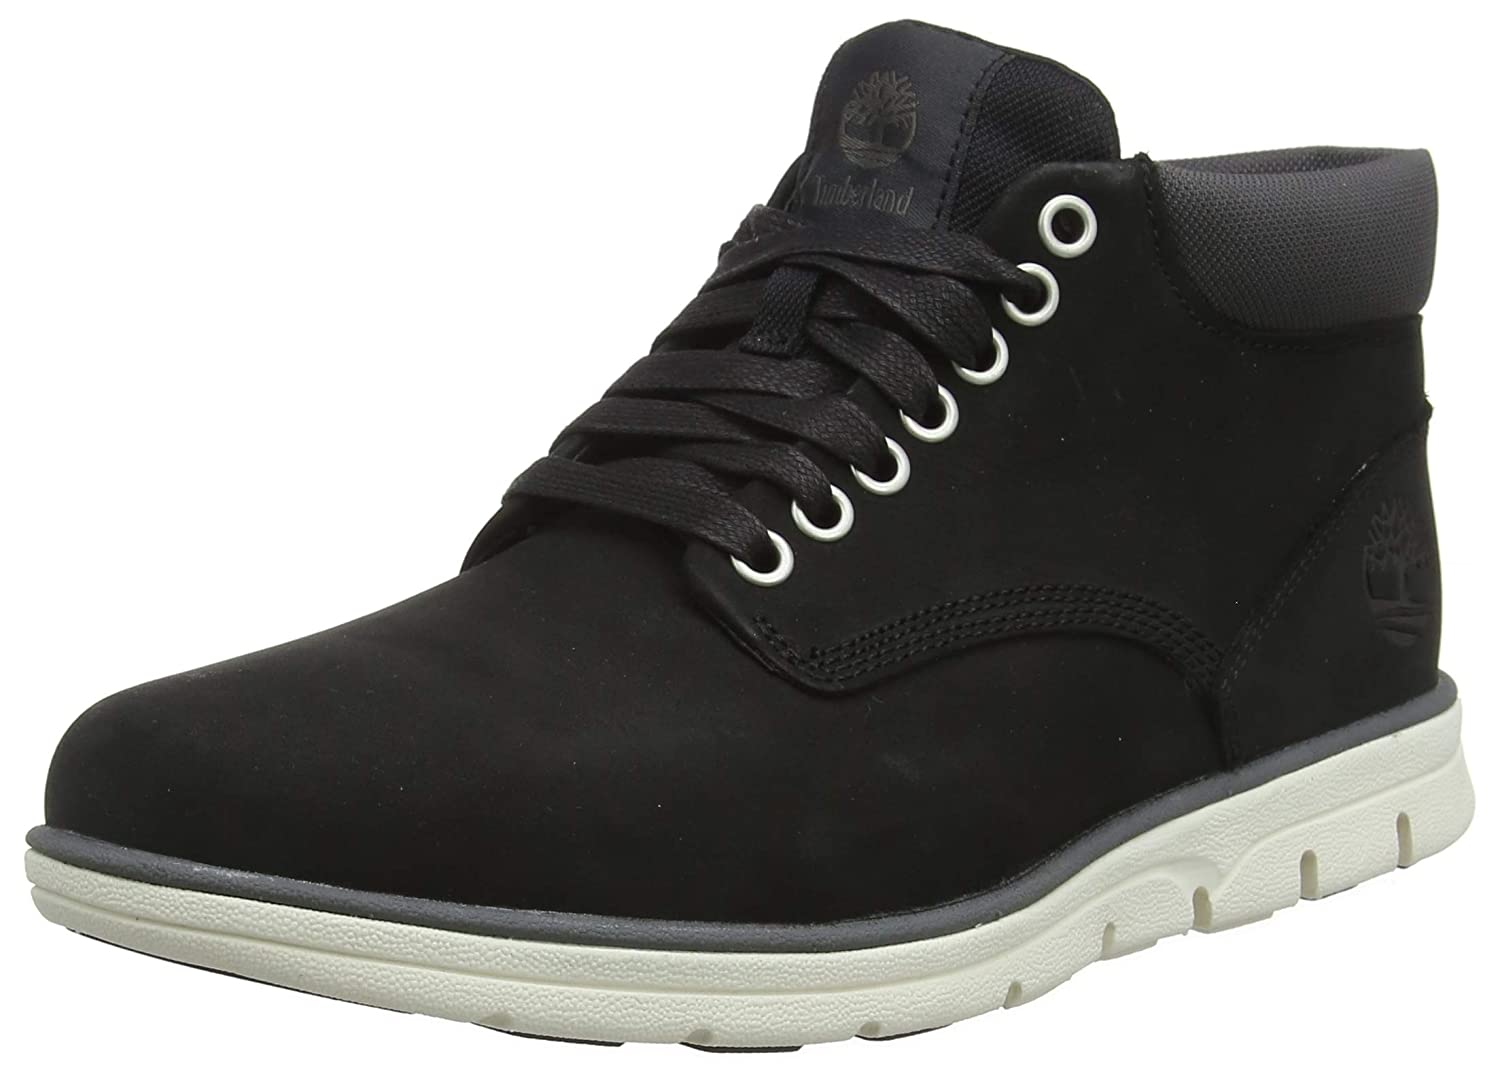 ad6437e86144 Timberland Men s Bradstreet Leather Chukka Boot  Amazon.co.uk  Shoes ...